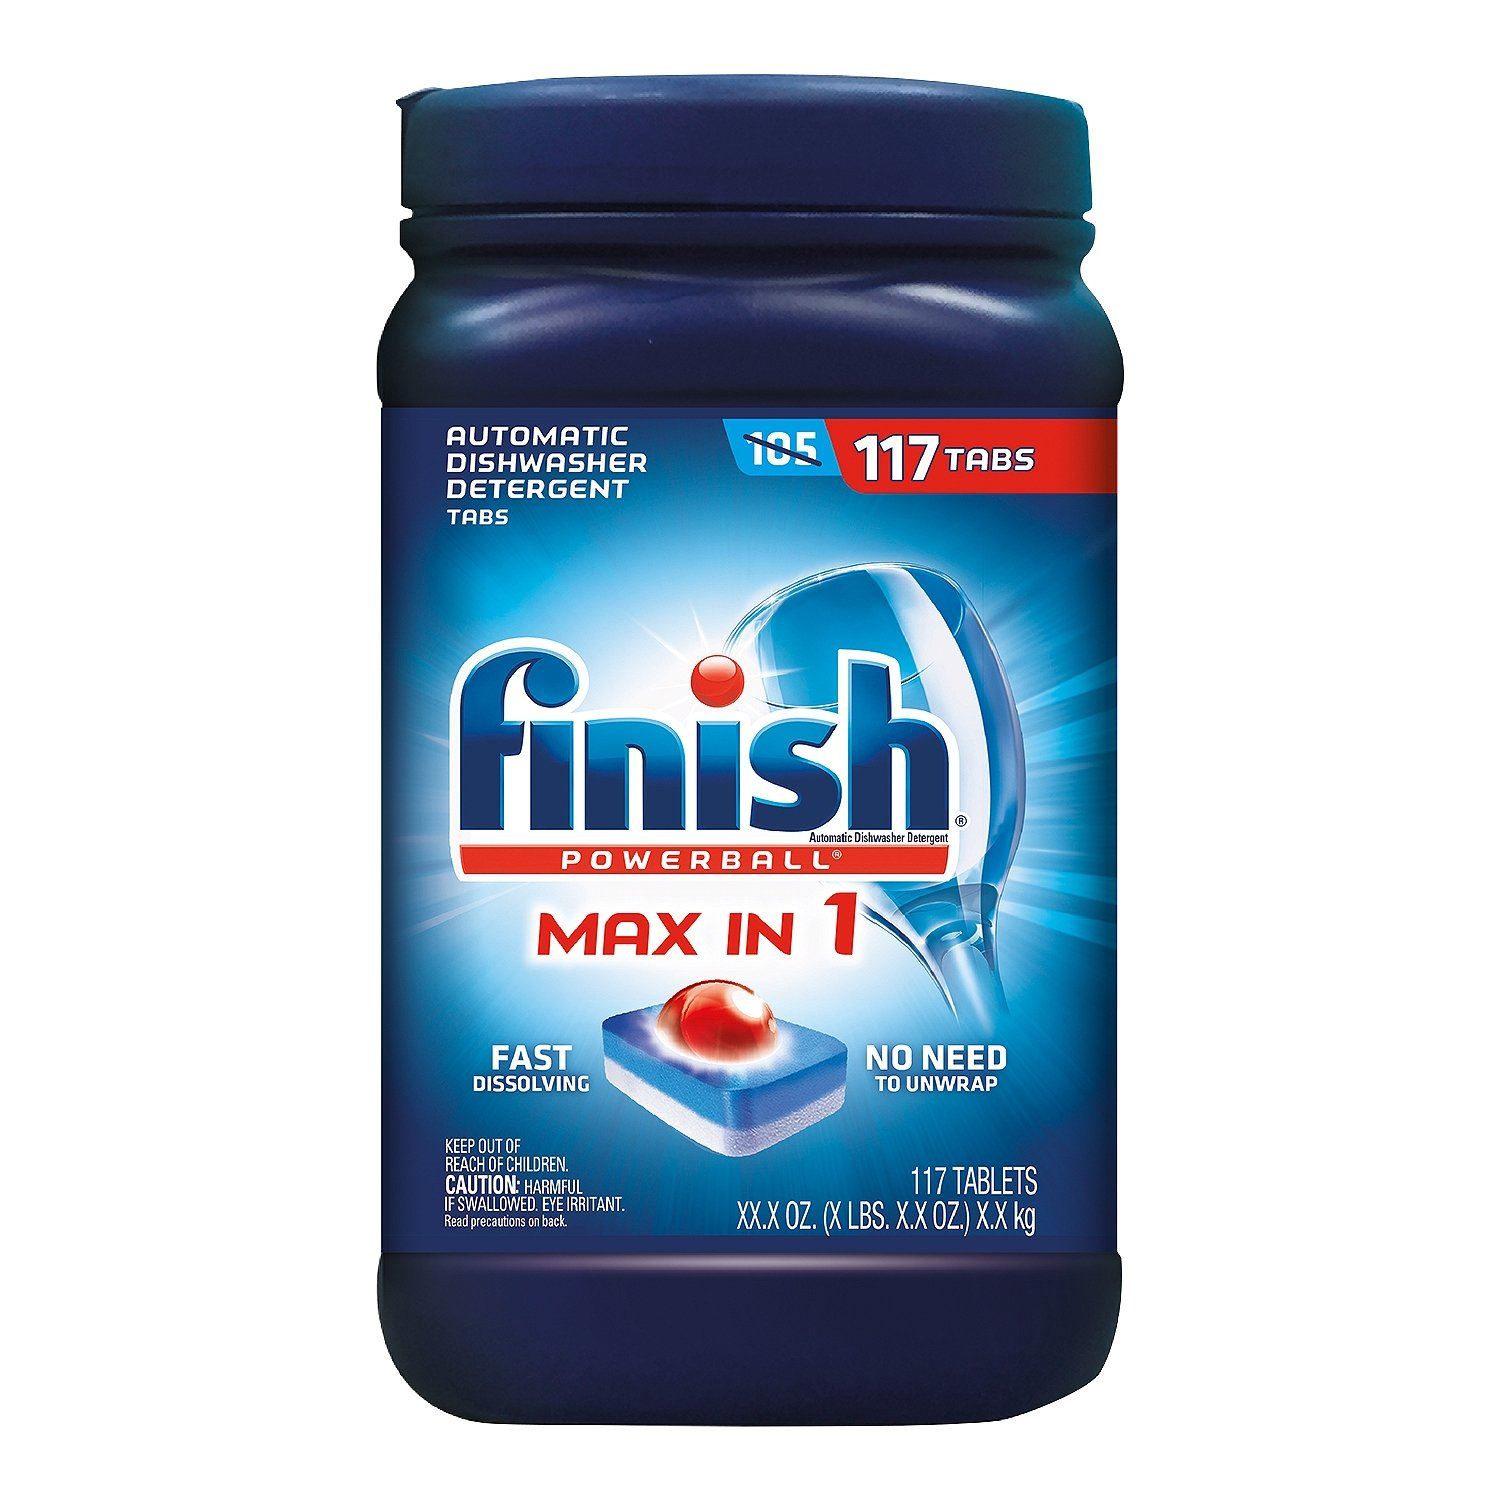 Finish Powerball Max-in-1 Automatic Dishwasher Detergent, 117 ct.- 2 Packs